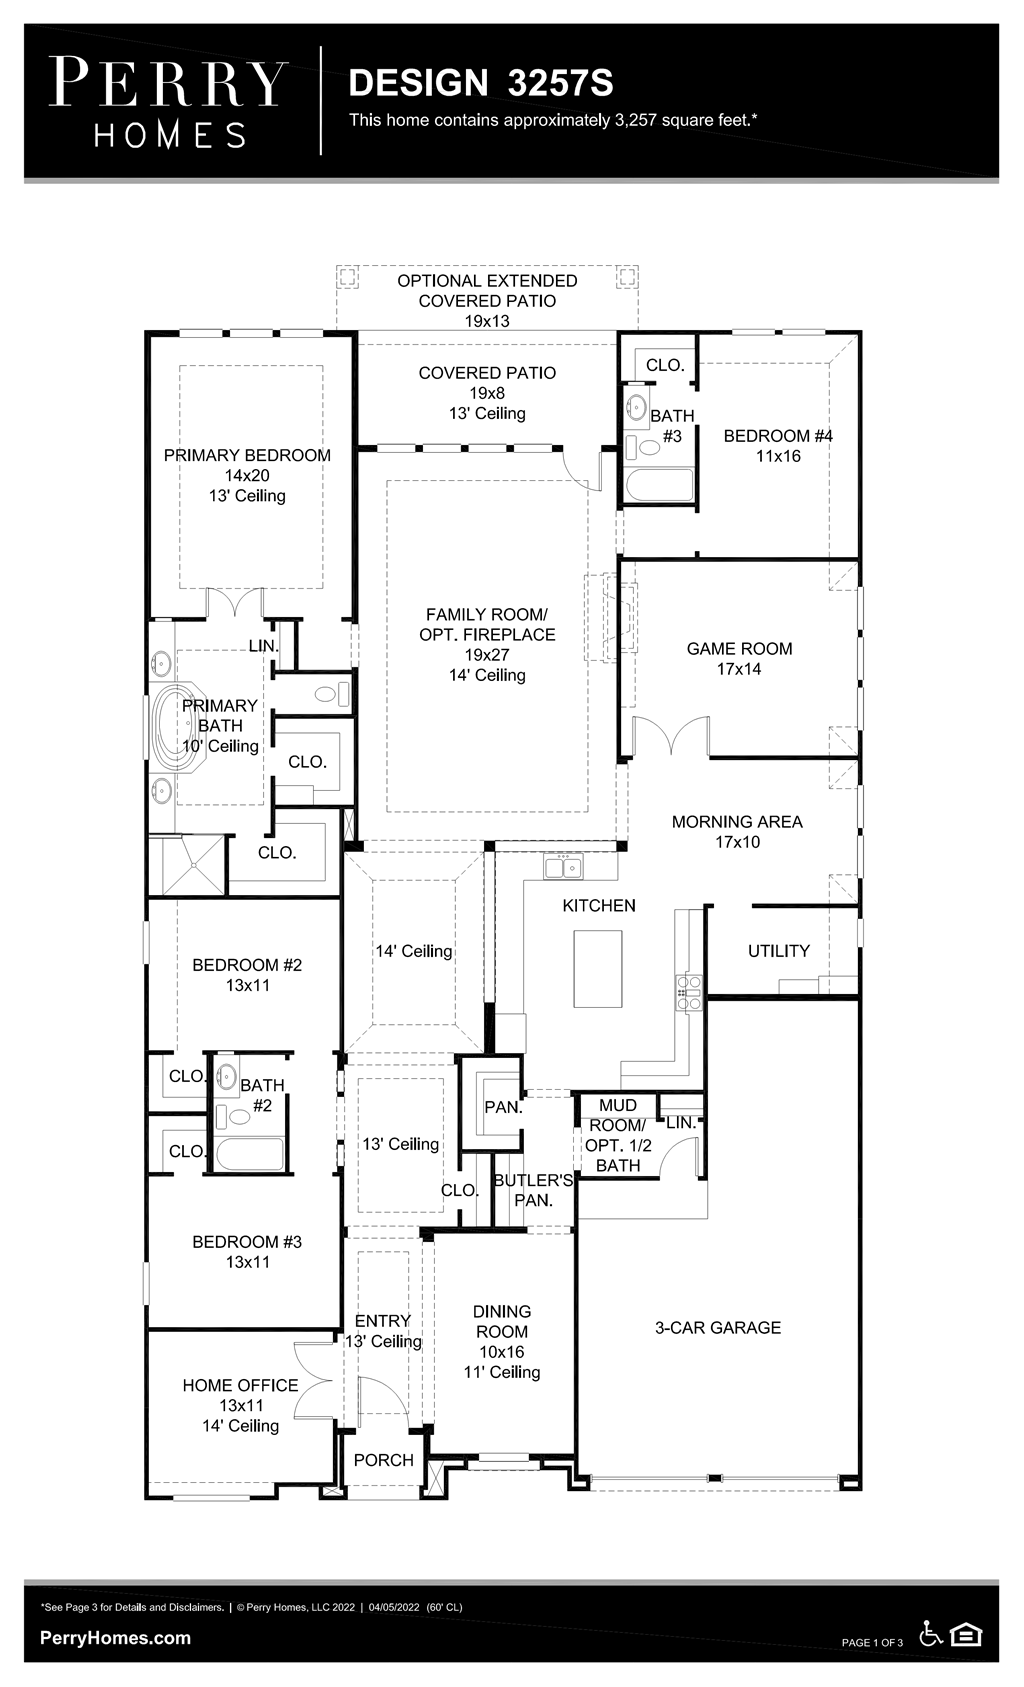 Floor Plan for 3257S